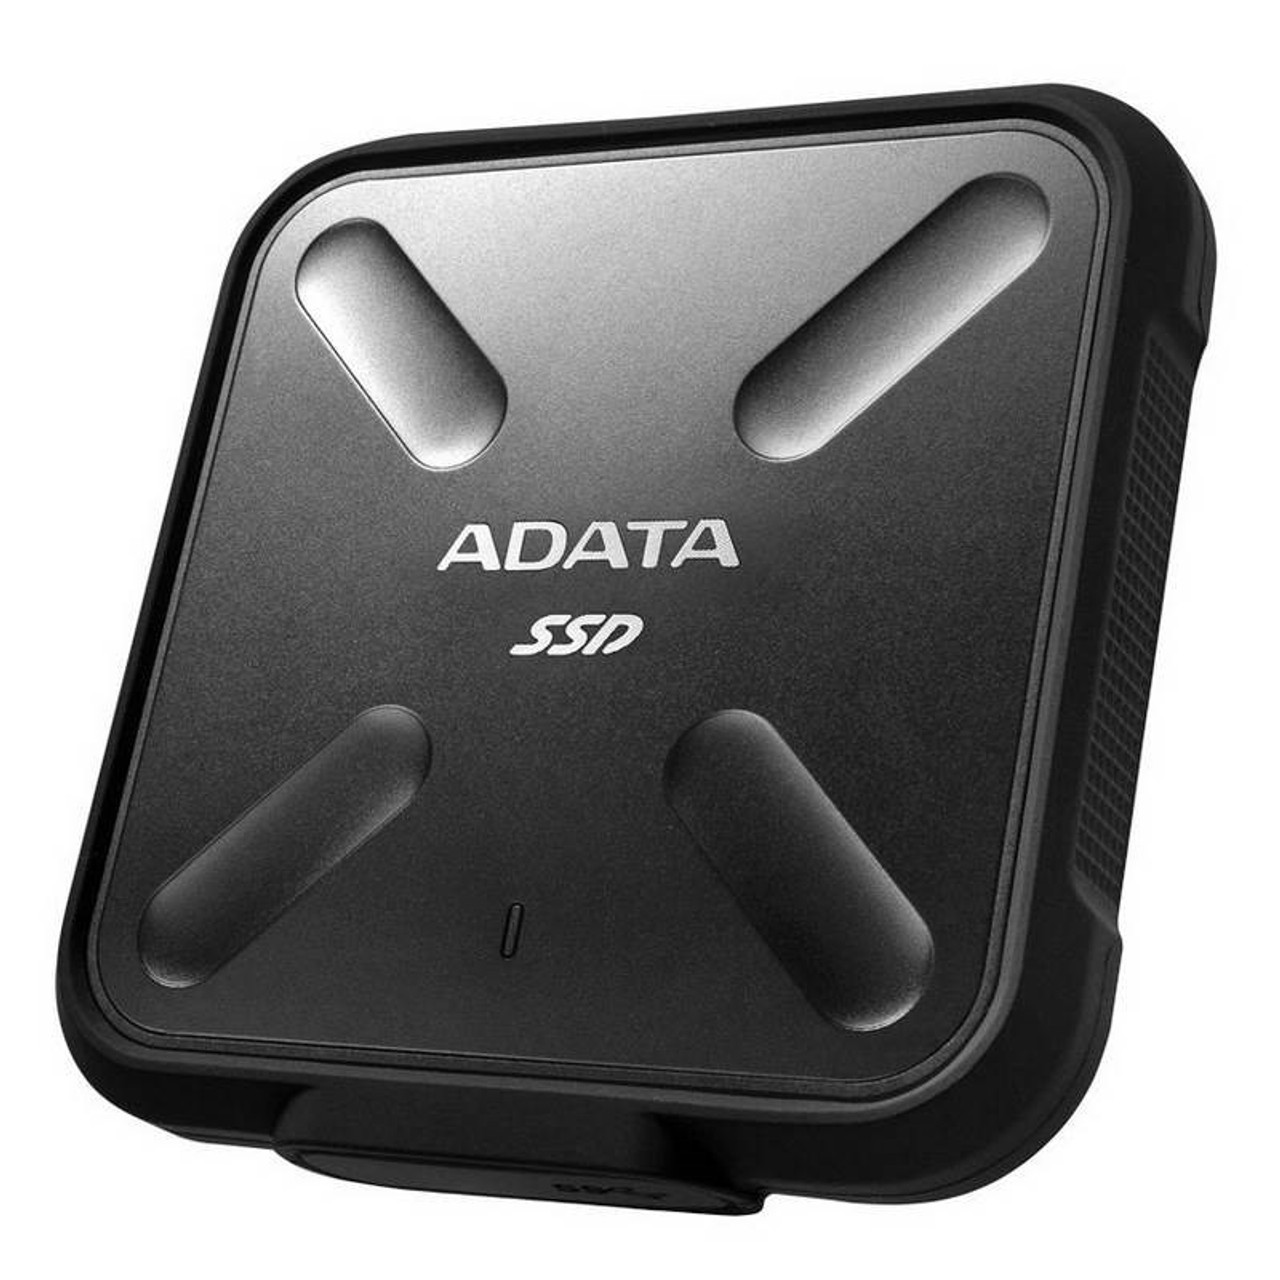 Image for Adata SD700 256GB USB 3.1 Portable External Rugged SSD Hard Drive - Black CX Computer Superstore